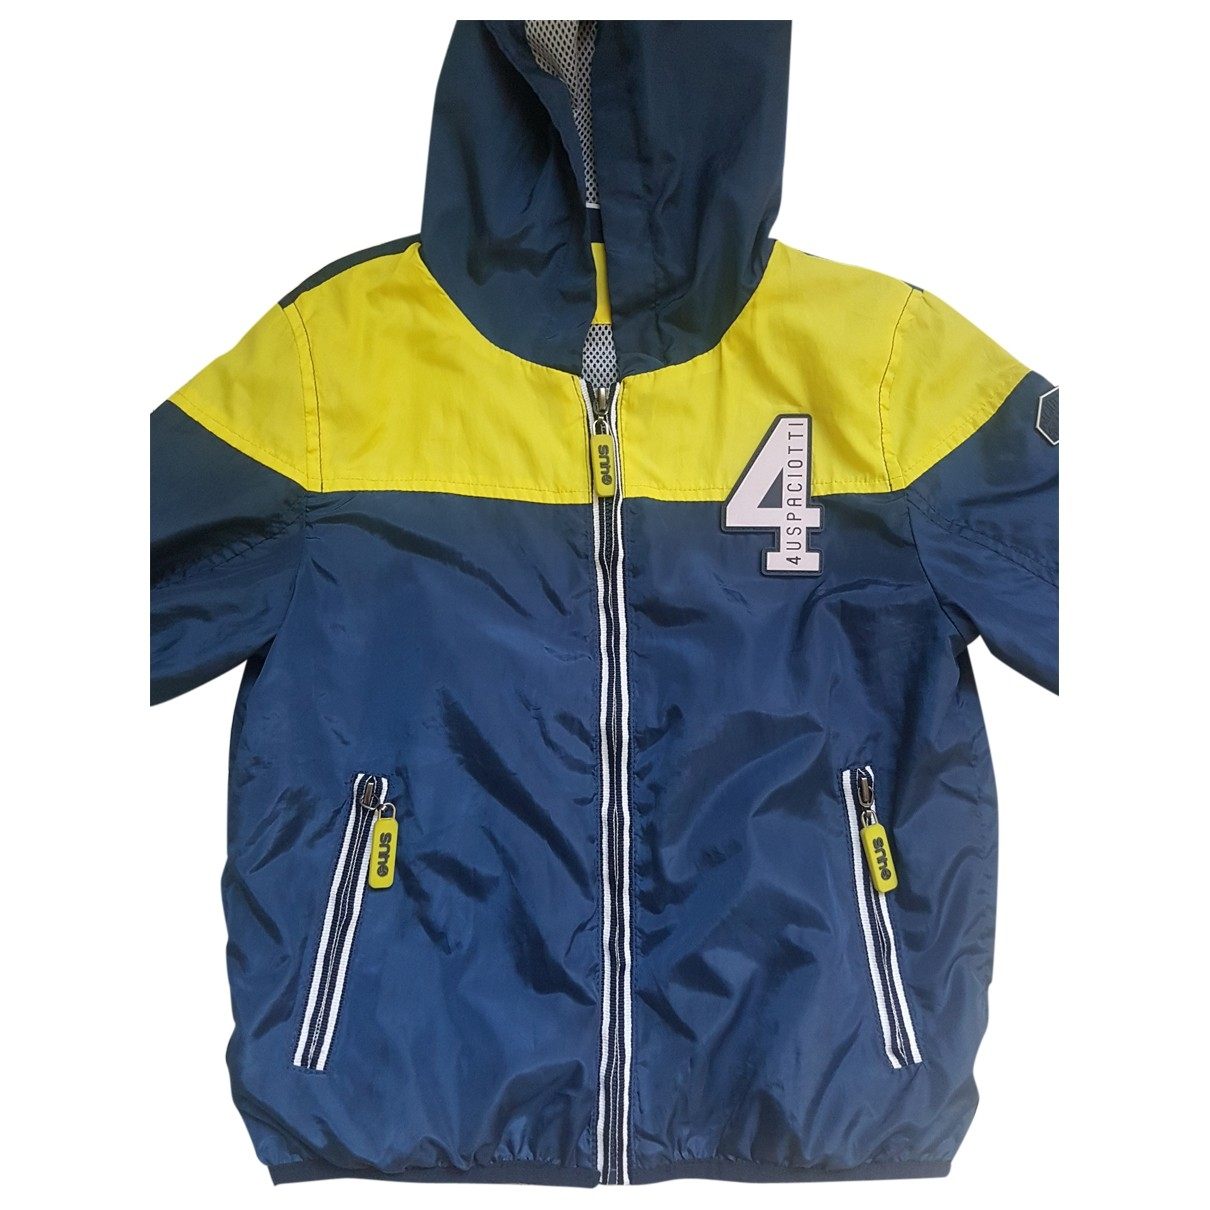 Cesare Paciotti \N Blue jacket & coat for Kids 6 years - up to 114cm FR